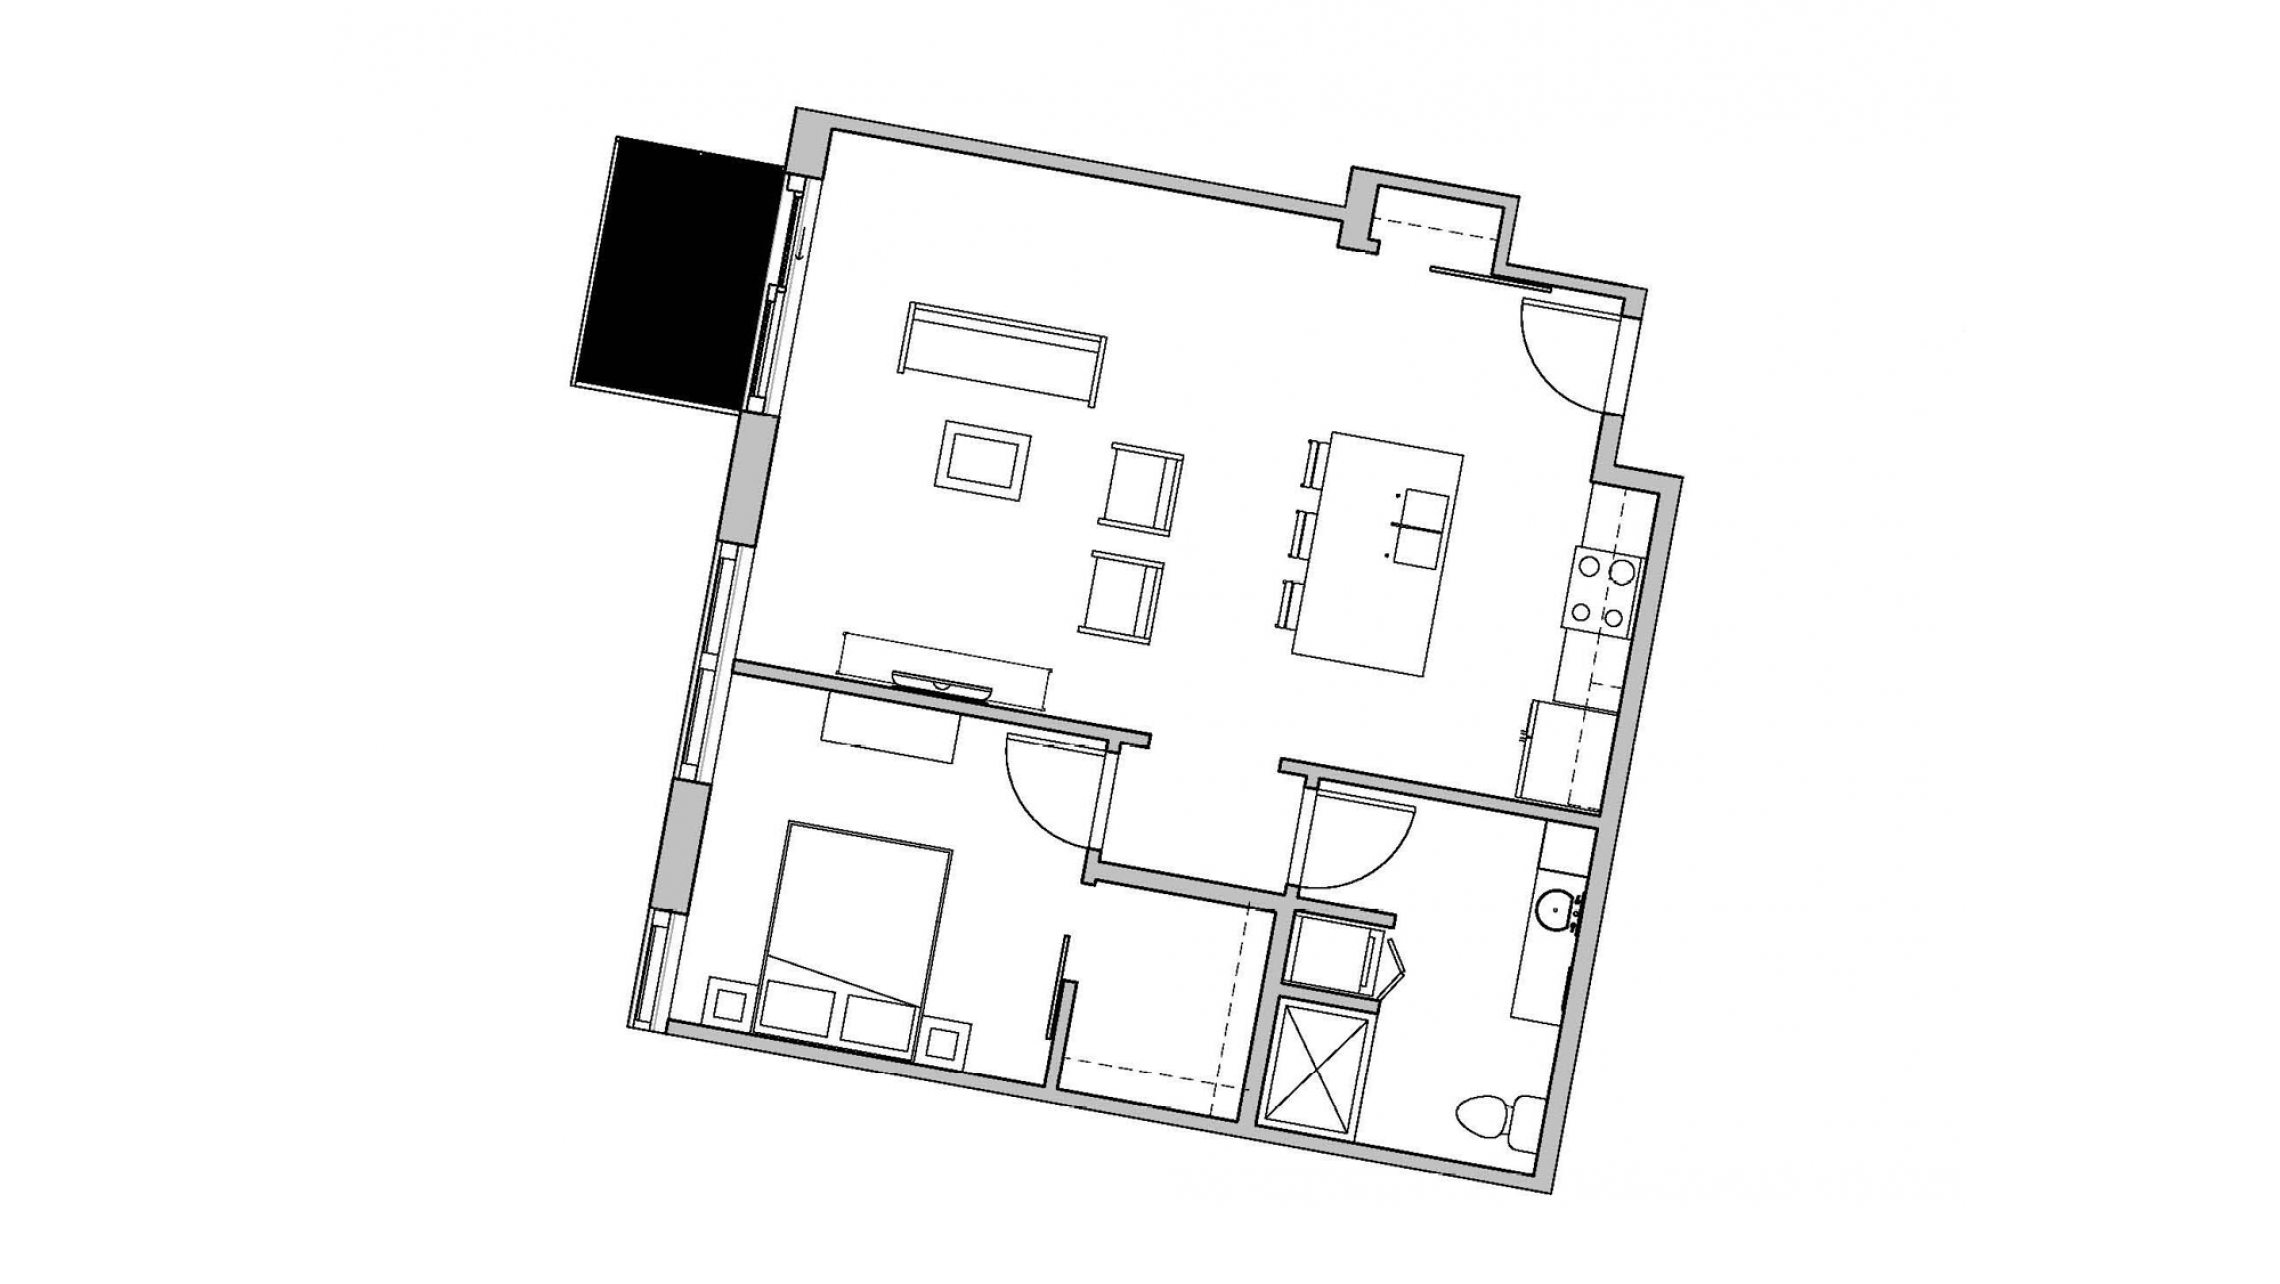 ULI Seven27 335 - One Bedroom, One Bathroom